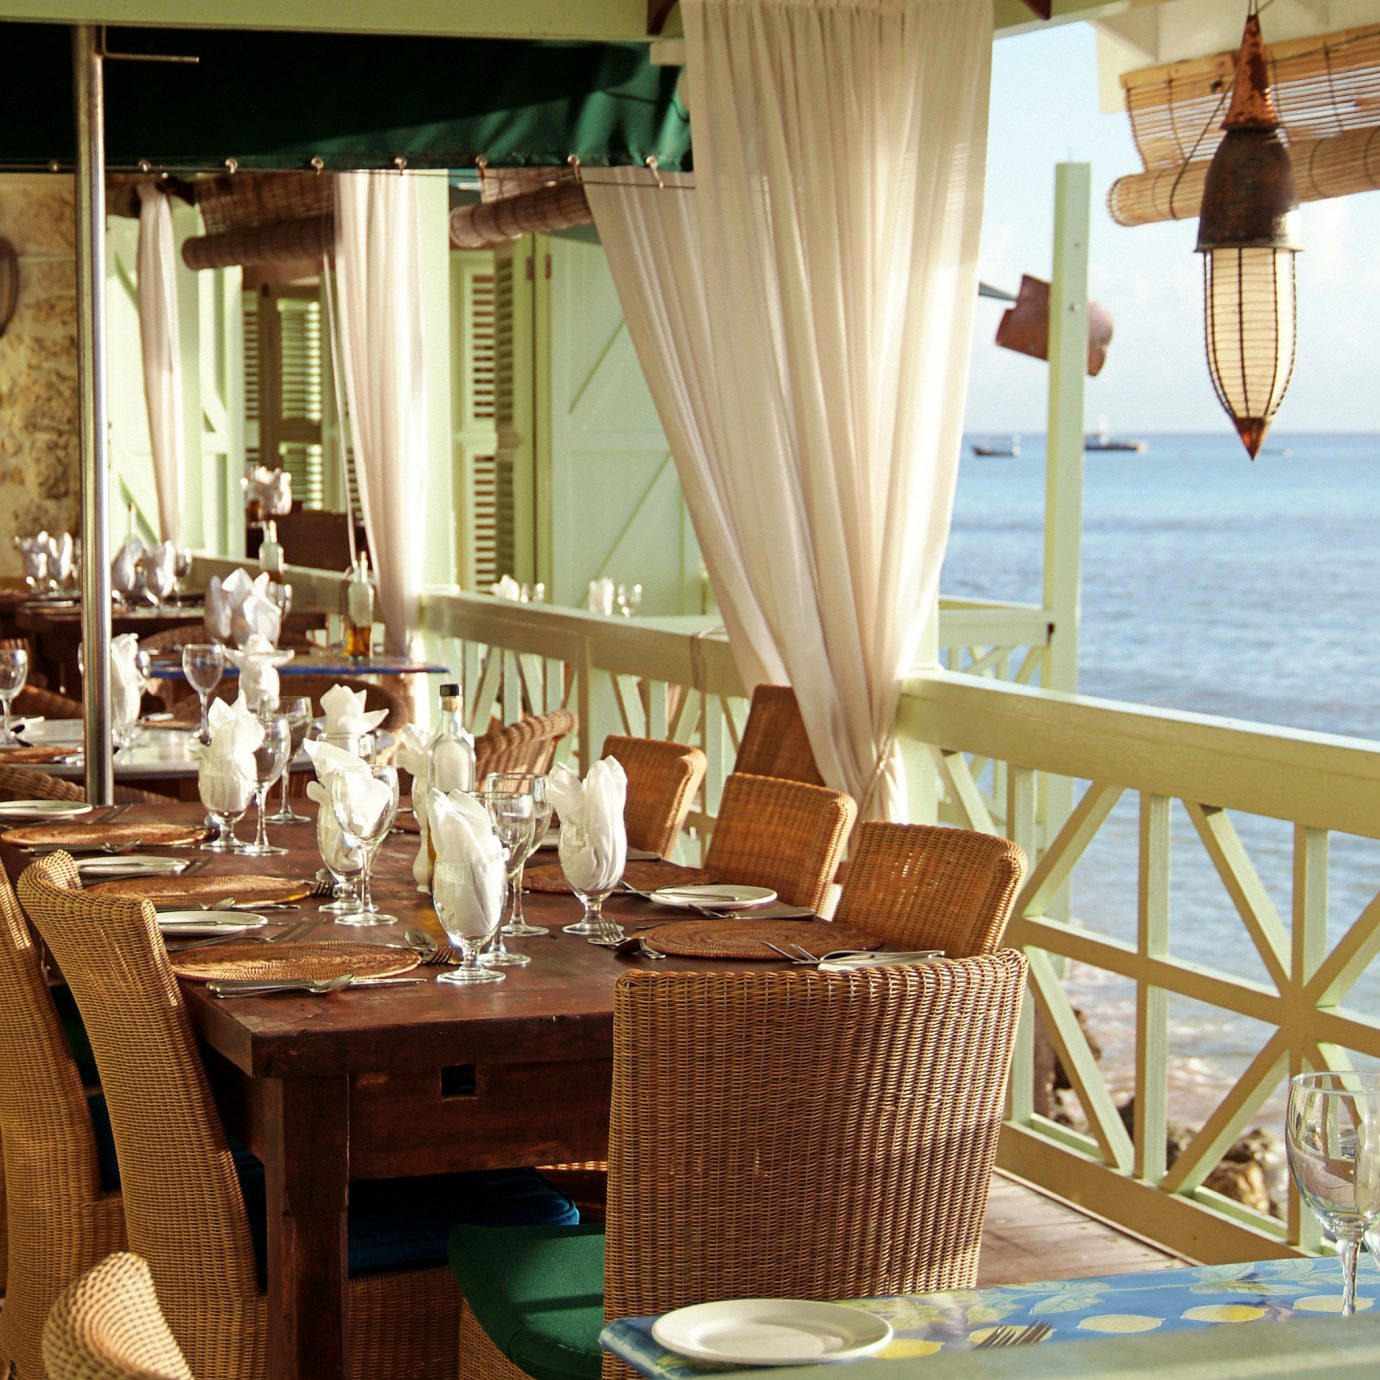 Bar Beachfront Dining Drink Eat Scenic views chair property restaurant Resort home Villa cottage set dining table